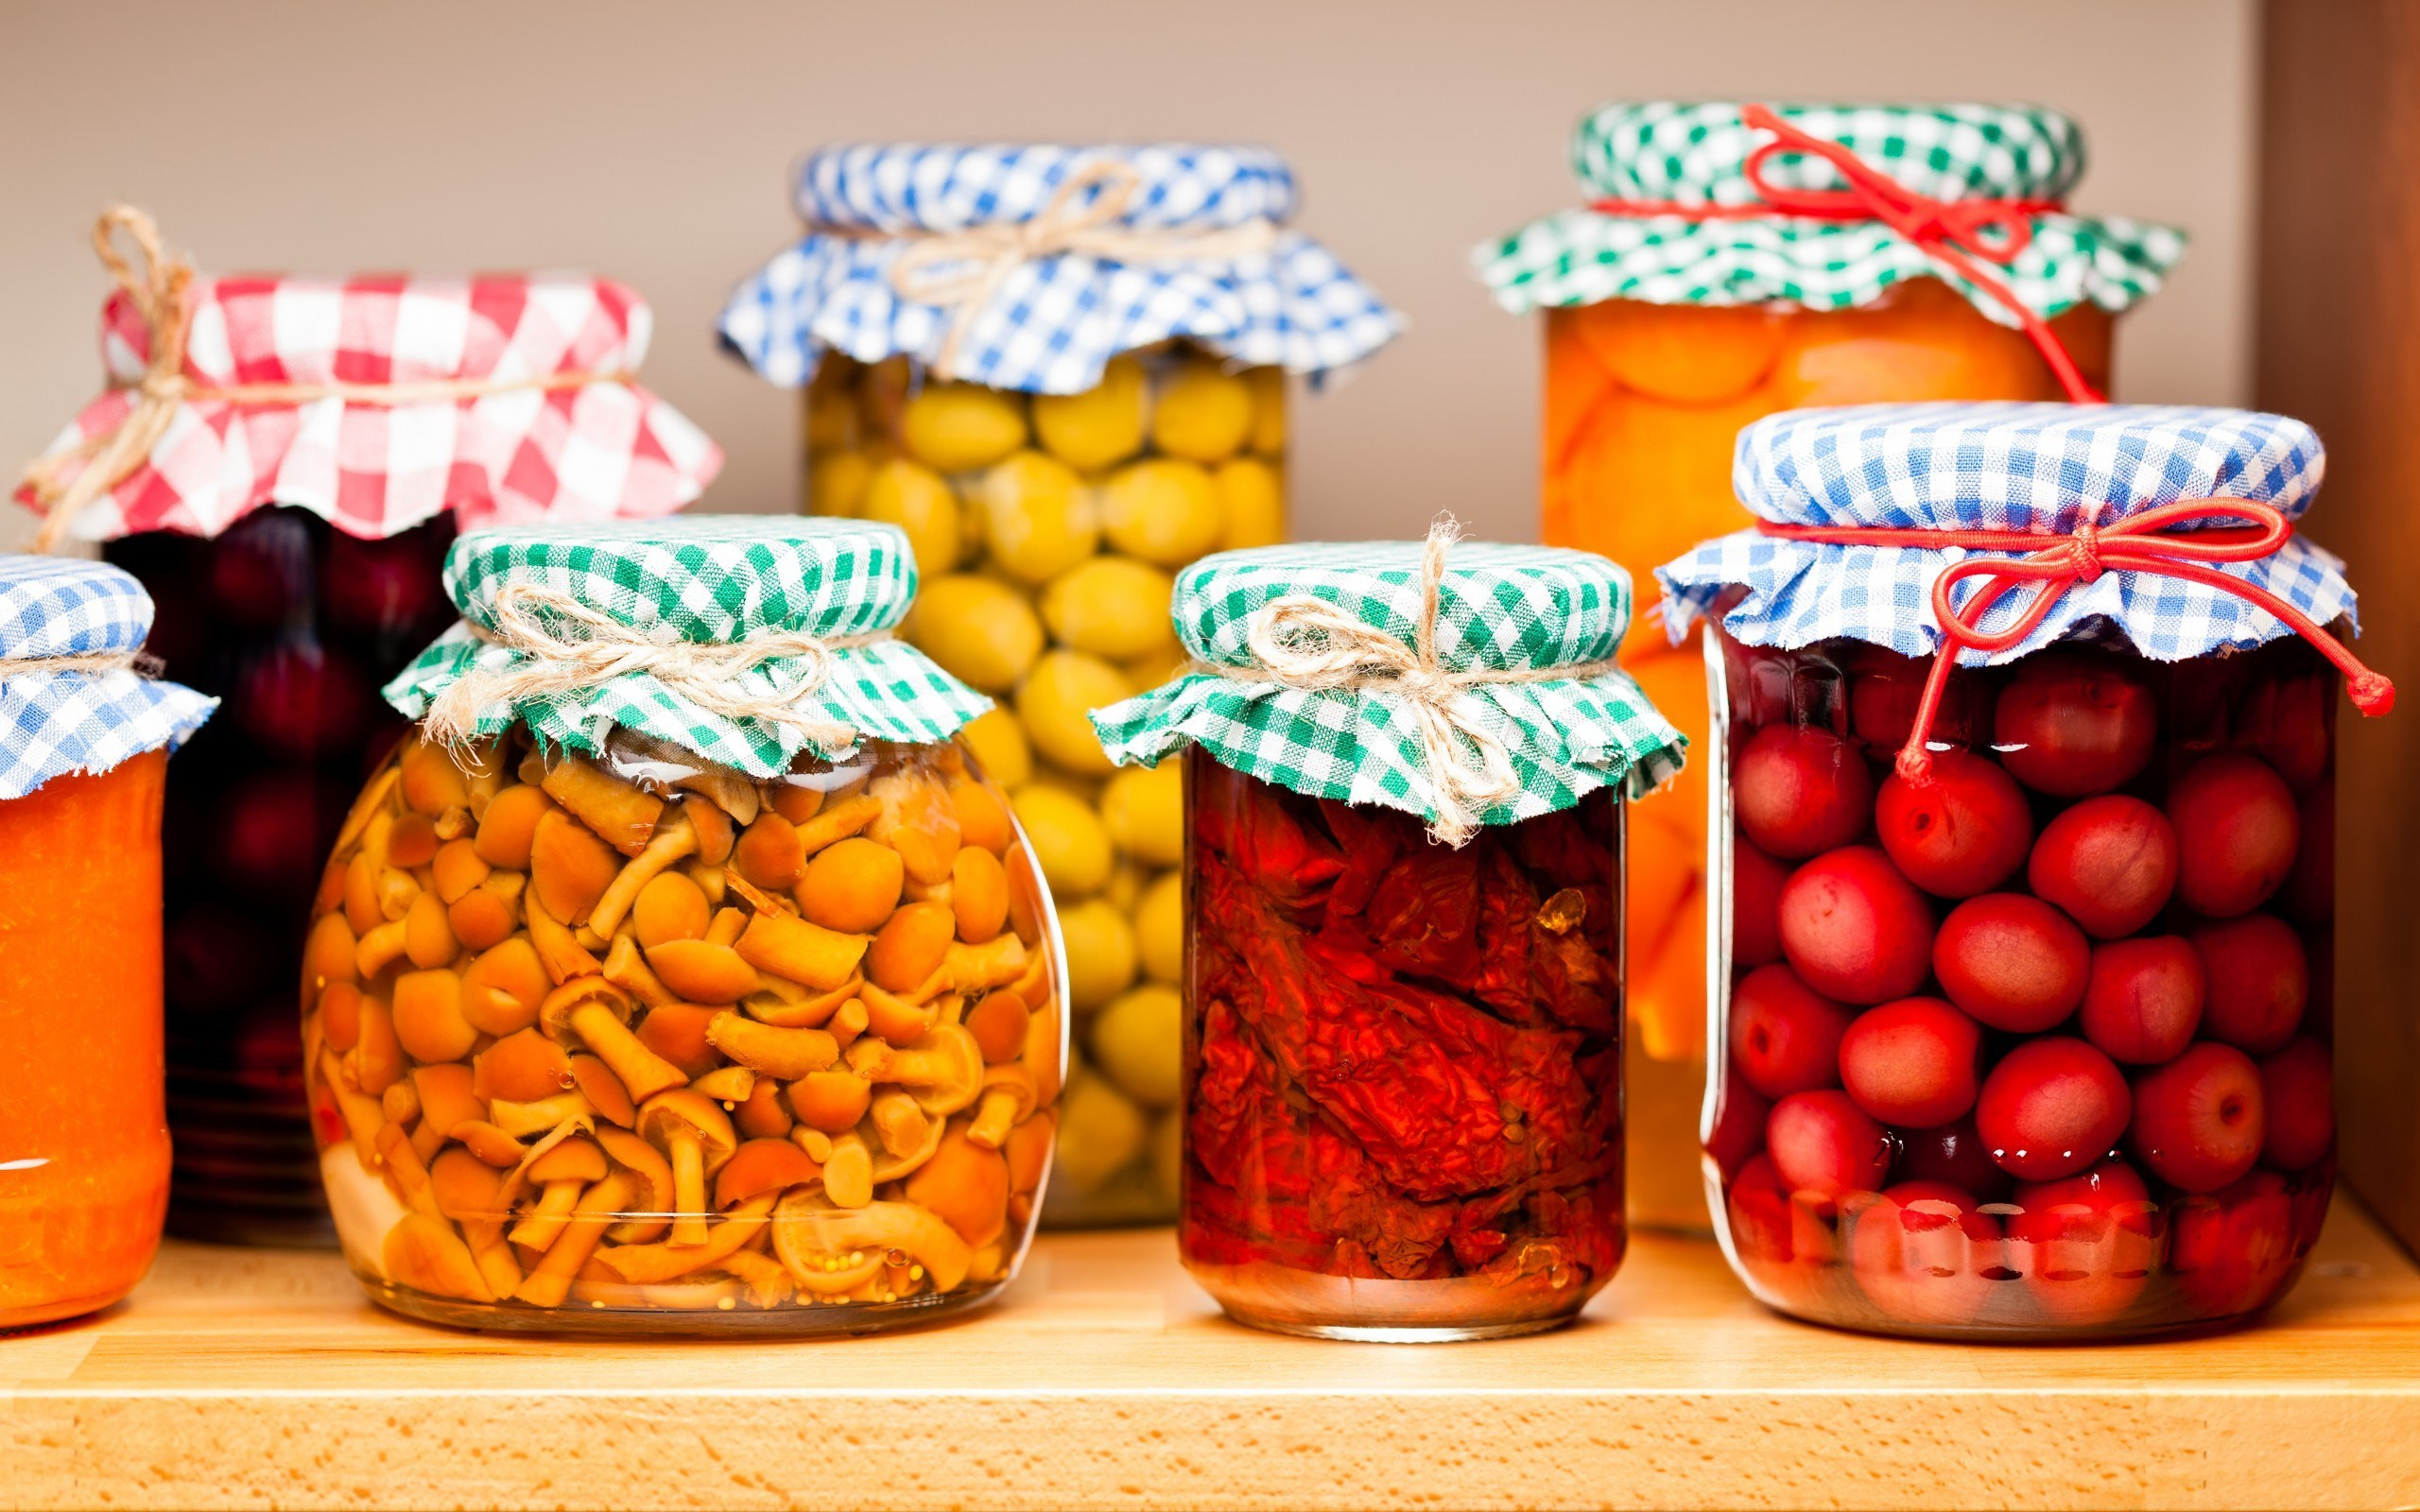 Fruits Vegetables Stored in Glass Jars Ready for The Winter